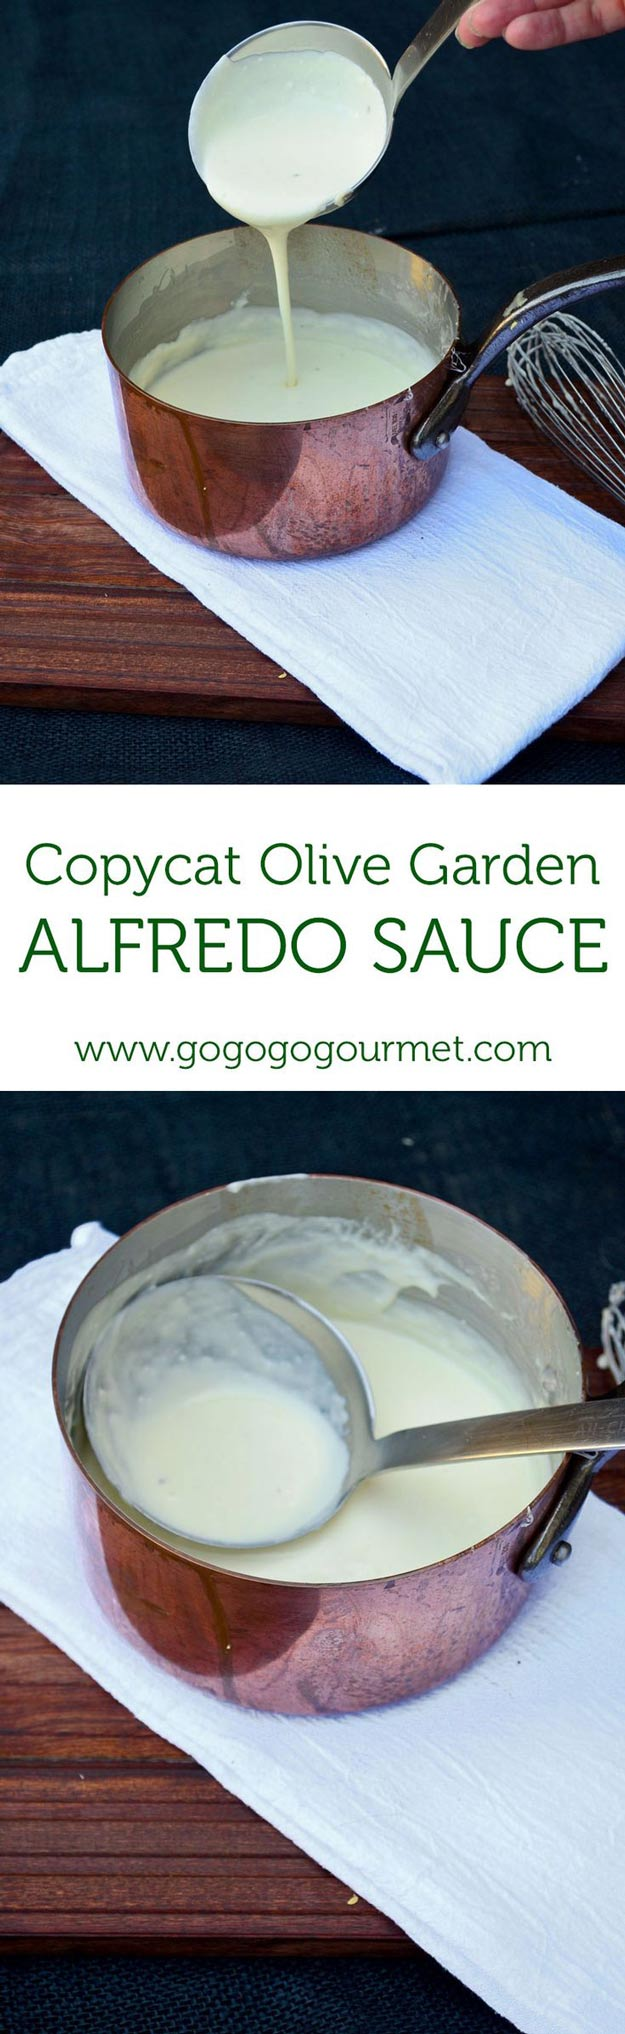 CopyCopycat Recipes From Top Restaurants. Best Recipe Knockoffs from Chipotle, Starbucks, Olive Garden, Cinabbon, Cracker Barrel, Taco Bell, Cheesecake Factory, KFC, Mc Donalds, Red Lobster, Panda Express | Copycat Olive Garden Alfredo Sauce | #recipes #copycatrecipescat Recipes From Top Restaurants. Best Recipe Knockoffs from Chipotle, Starbucks, Olive Garden, Cinabbon, Cracker Barrel, Taco Bell, Cheesecake Factory, KFC, Mc Donalds, Red Lobster, Panda Express | Copycat Olive Garden Alfredo Sauce |